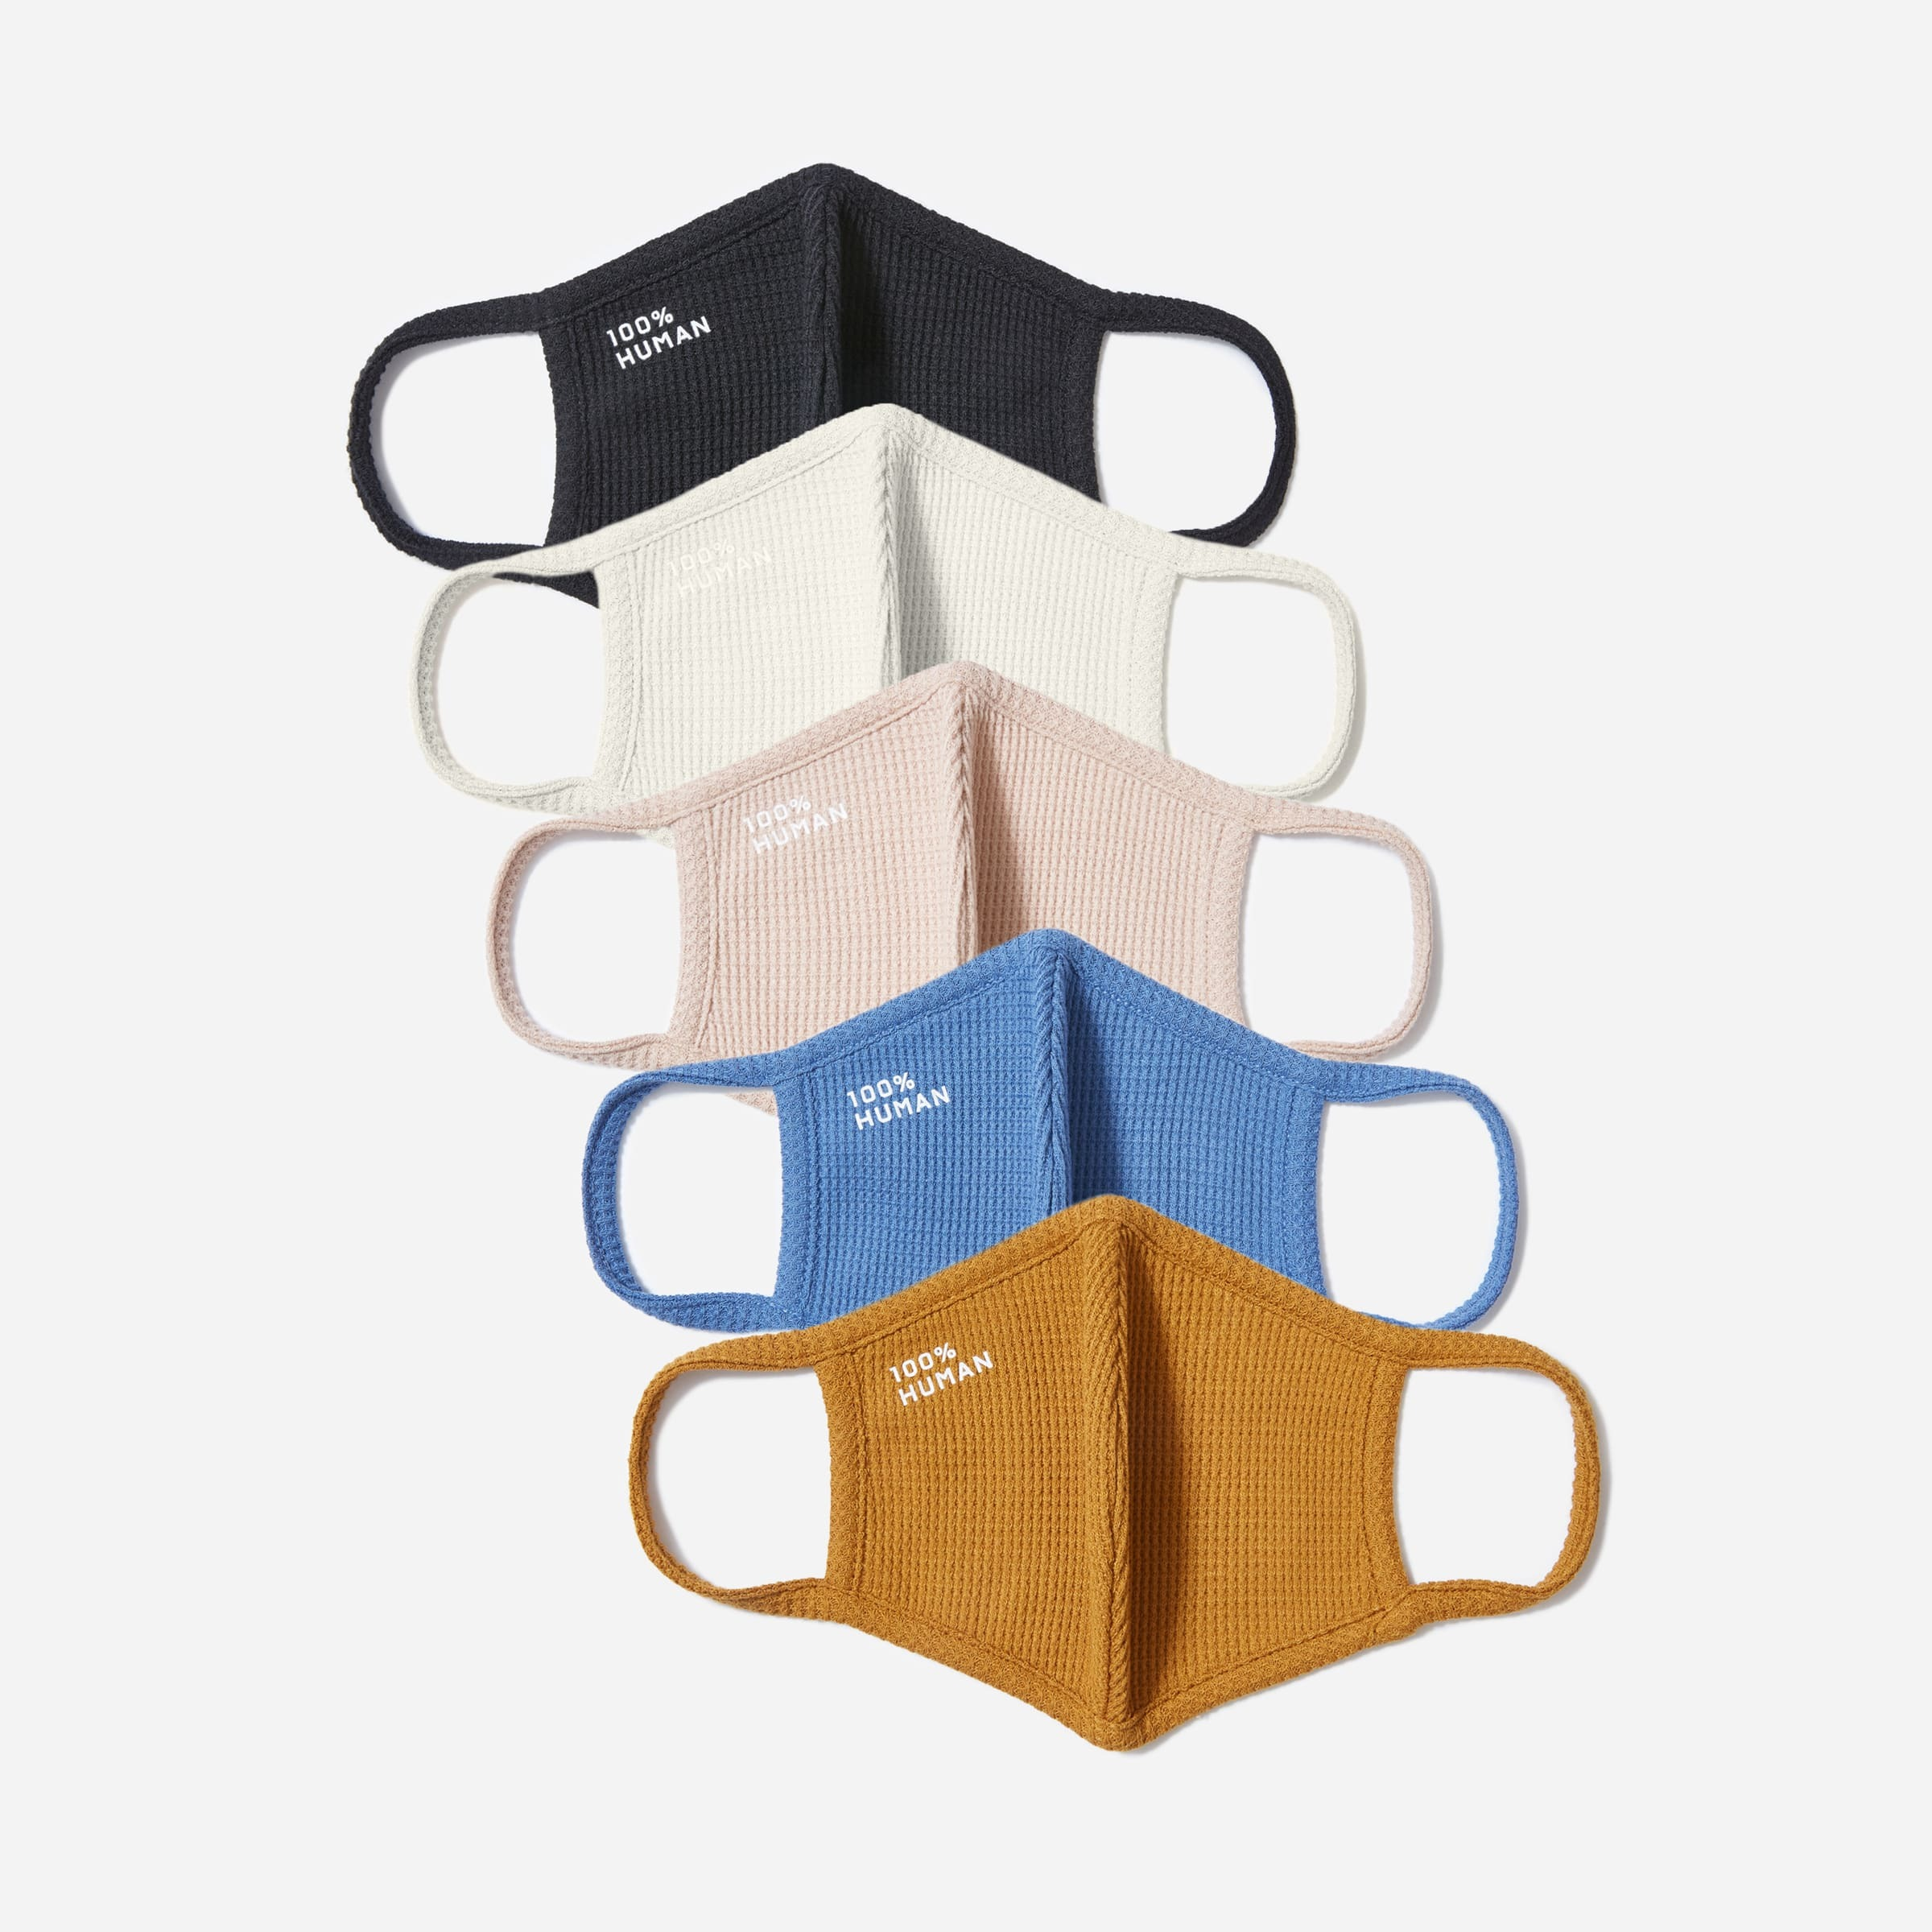 best stocking stuffers - Everlane 100% Human Face Mask 5-Pack